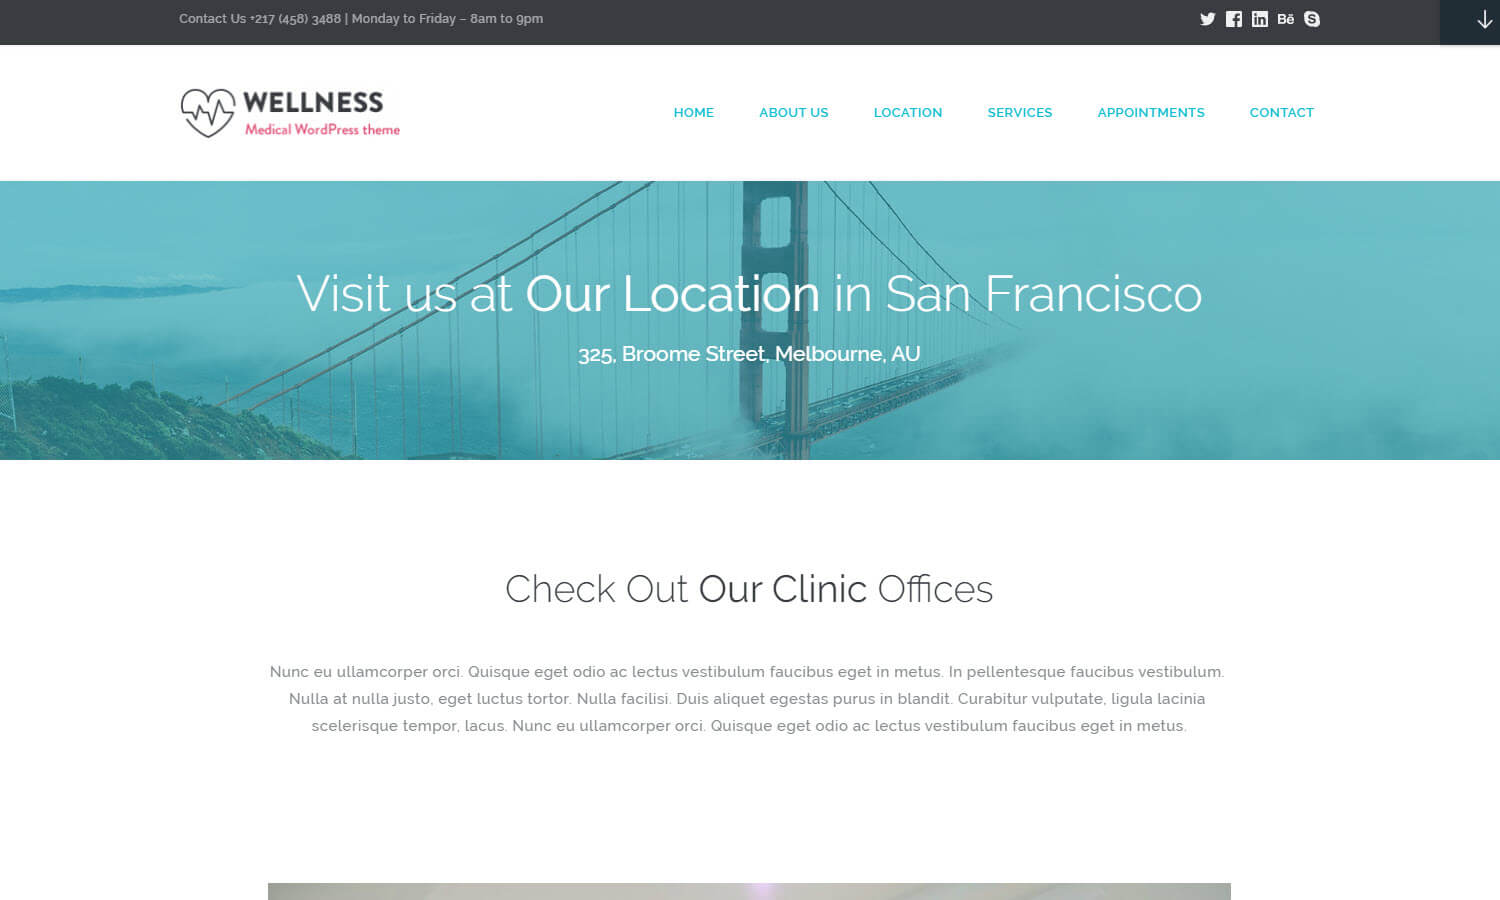 Wellness screenshot